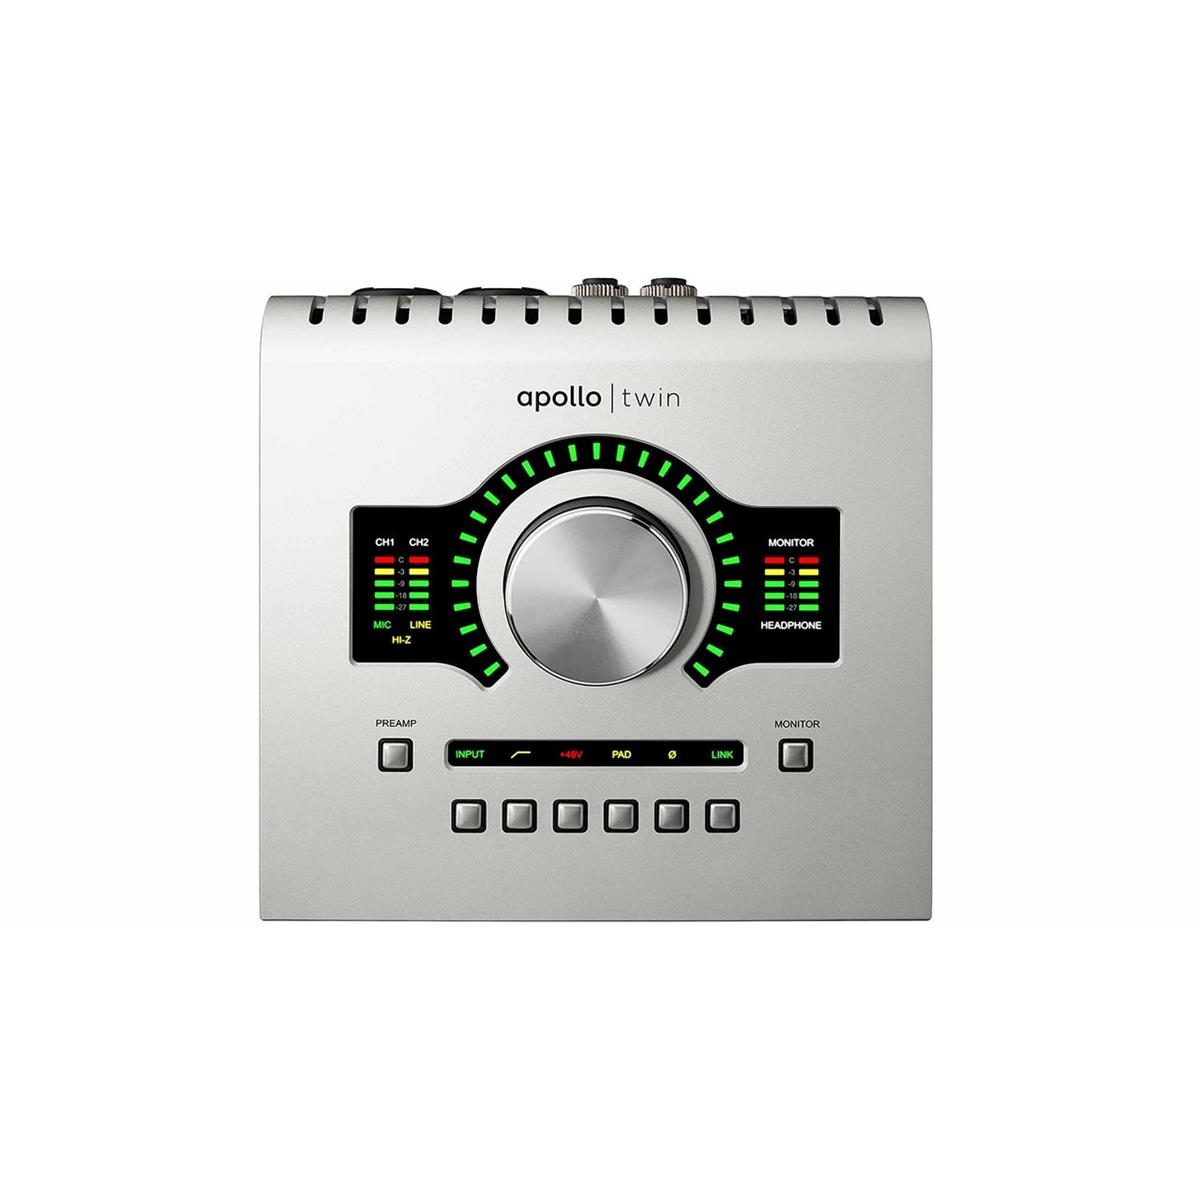 UNIVERSAL-AUDIO-APOLLO-TWIN-DUO-USB-sku-19402